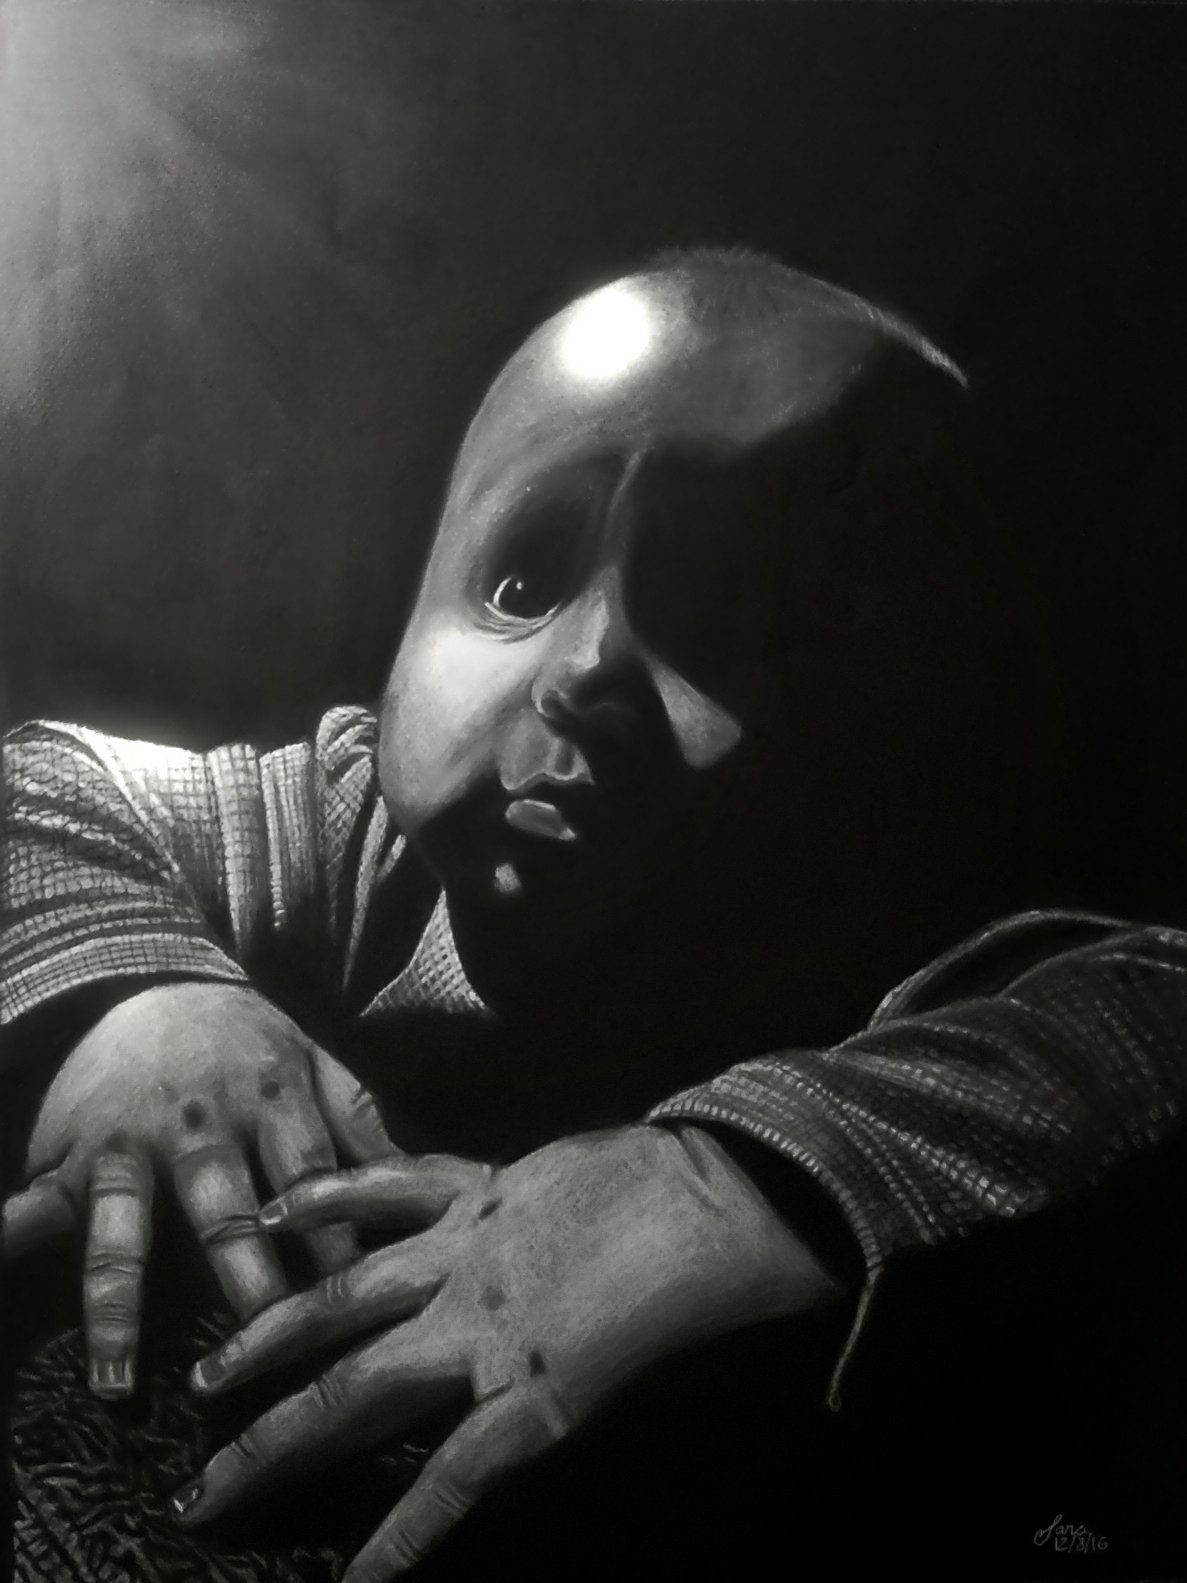 A charcoal drawing of a baby